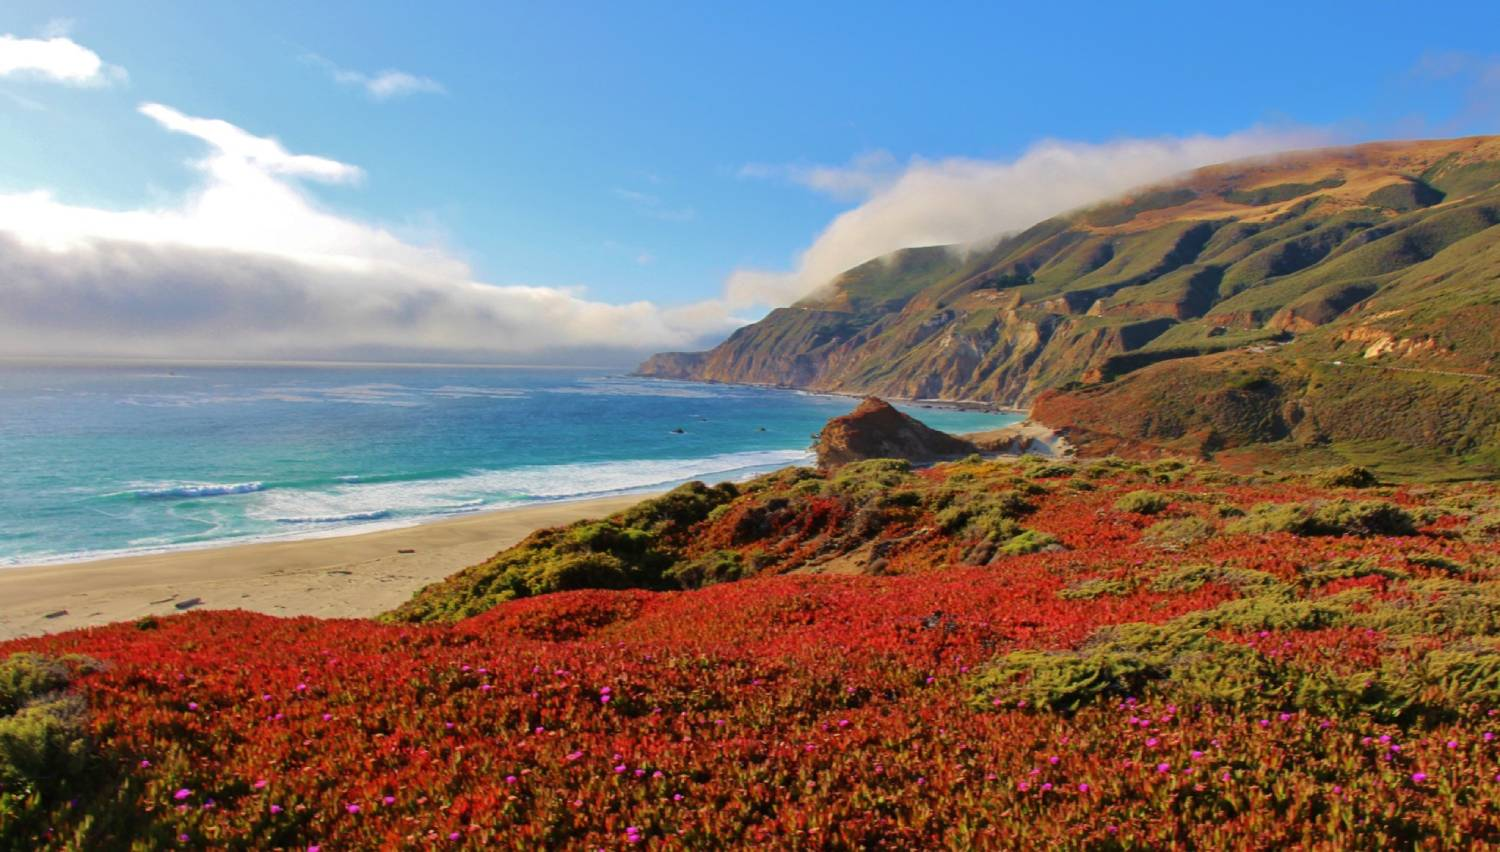 Mendocino - Things To Do In San Francisco